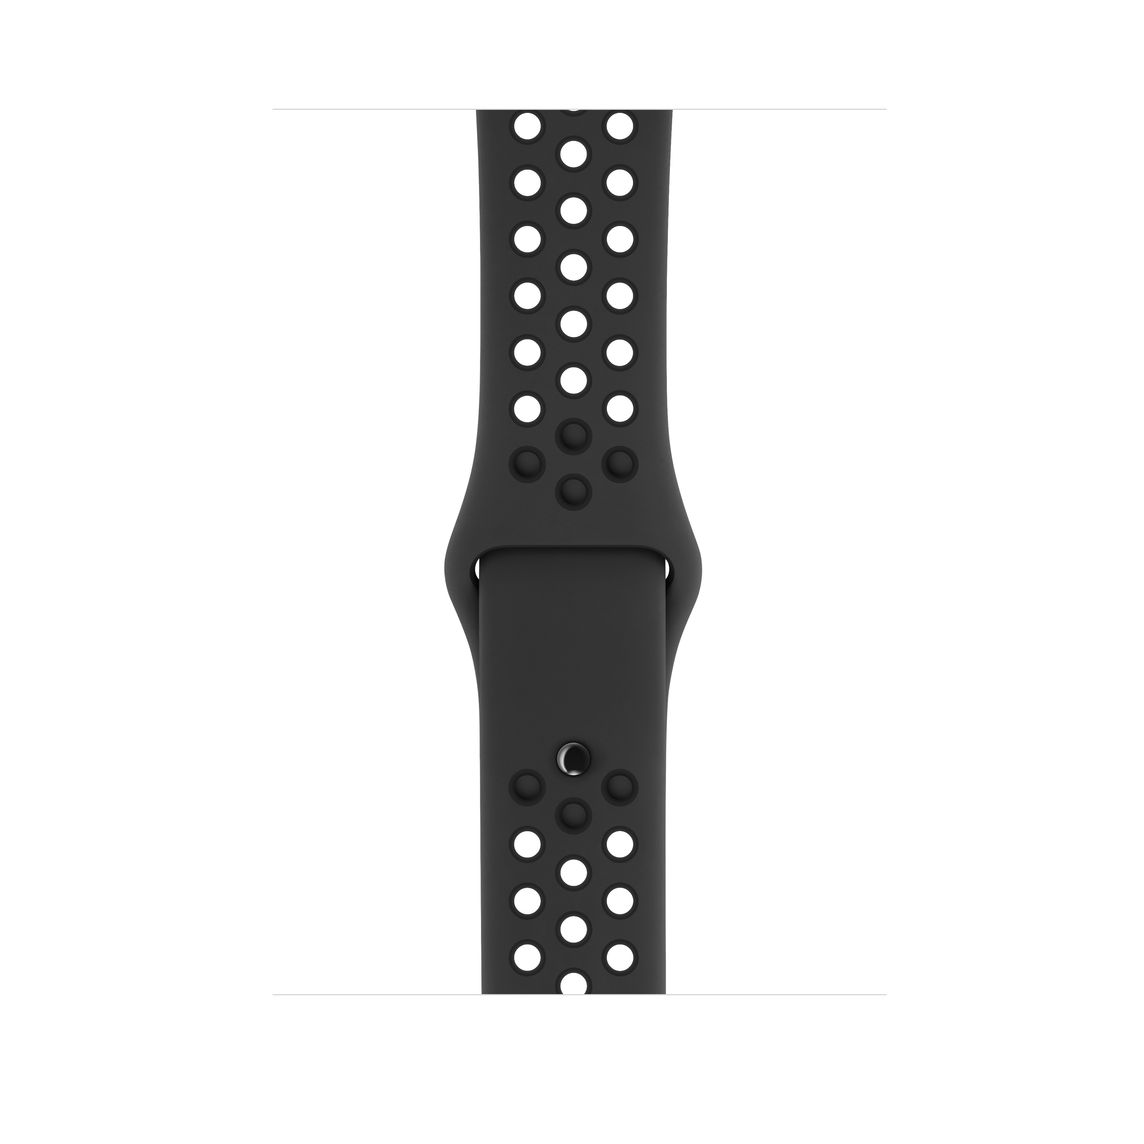 Intención tienda Que agradable  Refurbished Apple Watch Series 3 GPS, 42mm Space Gray Aluminum Case with  Anthracite/Black Nike Sport Band - Apple